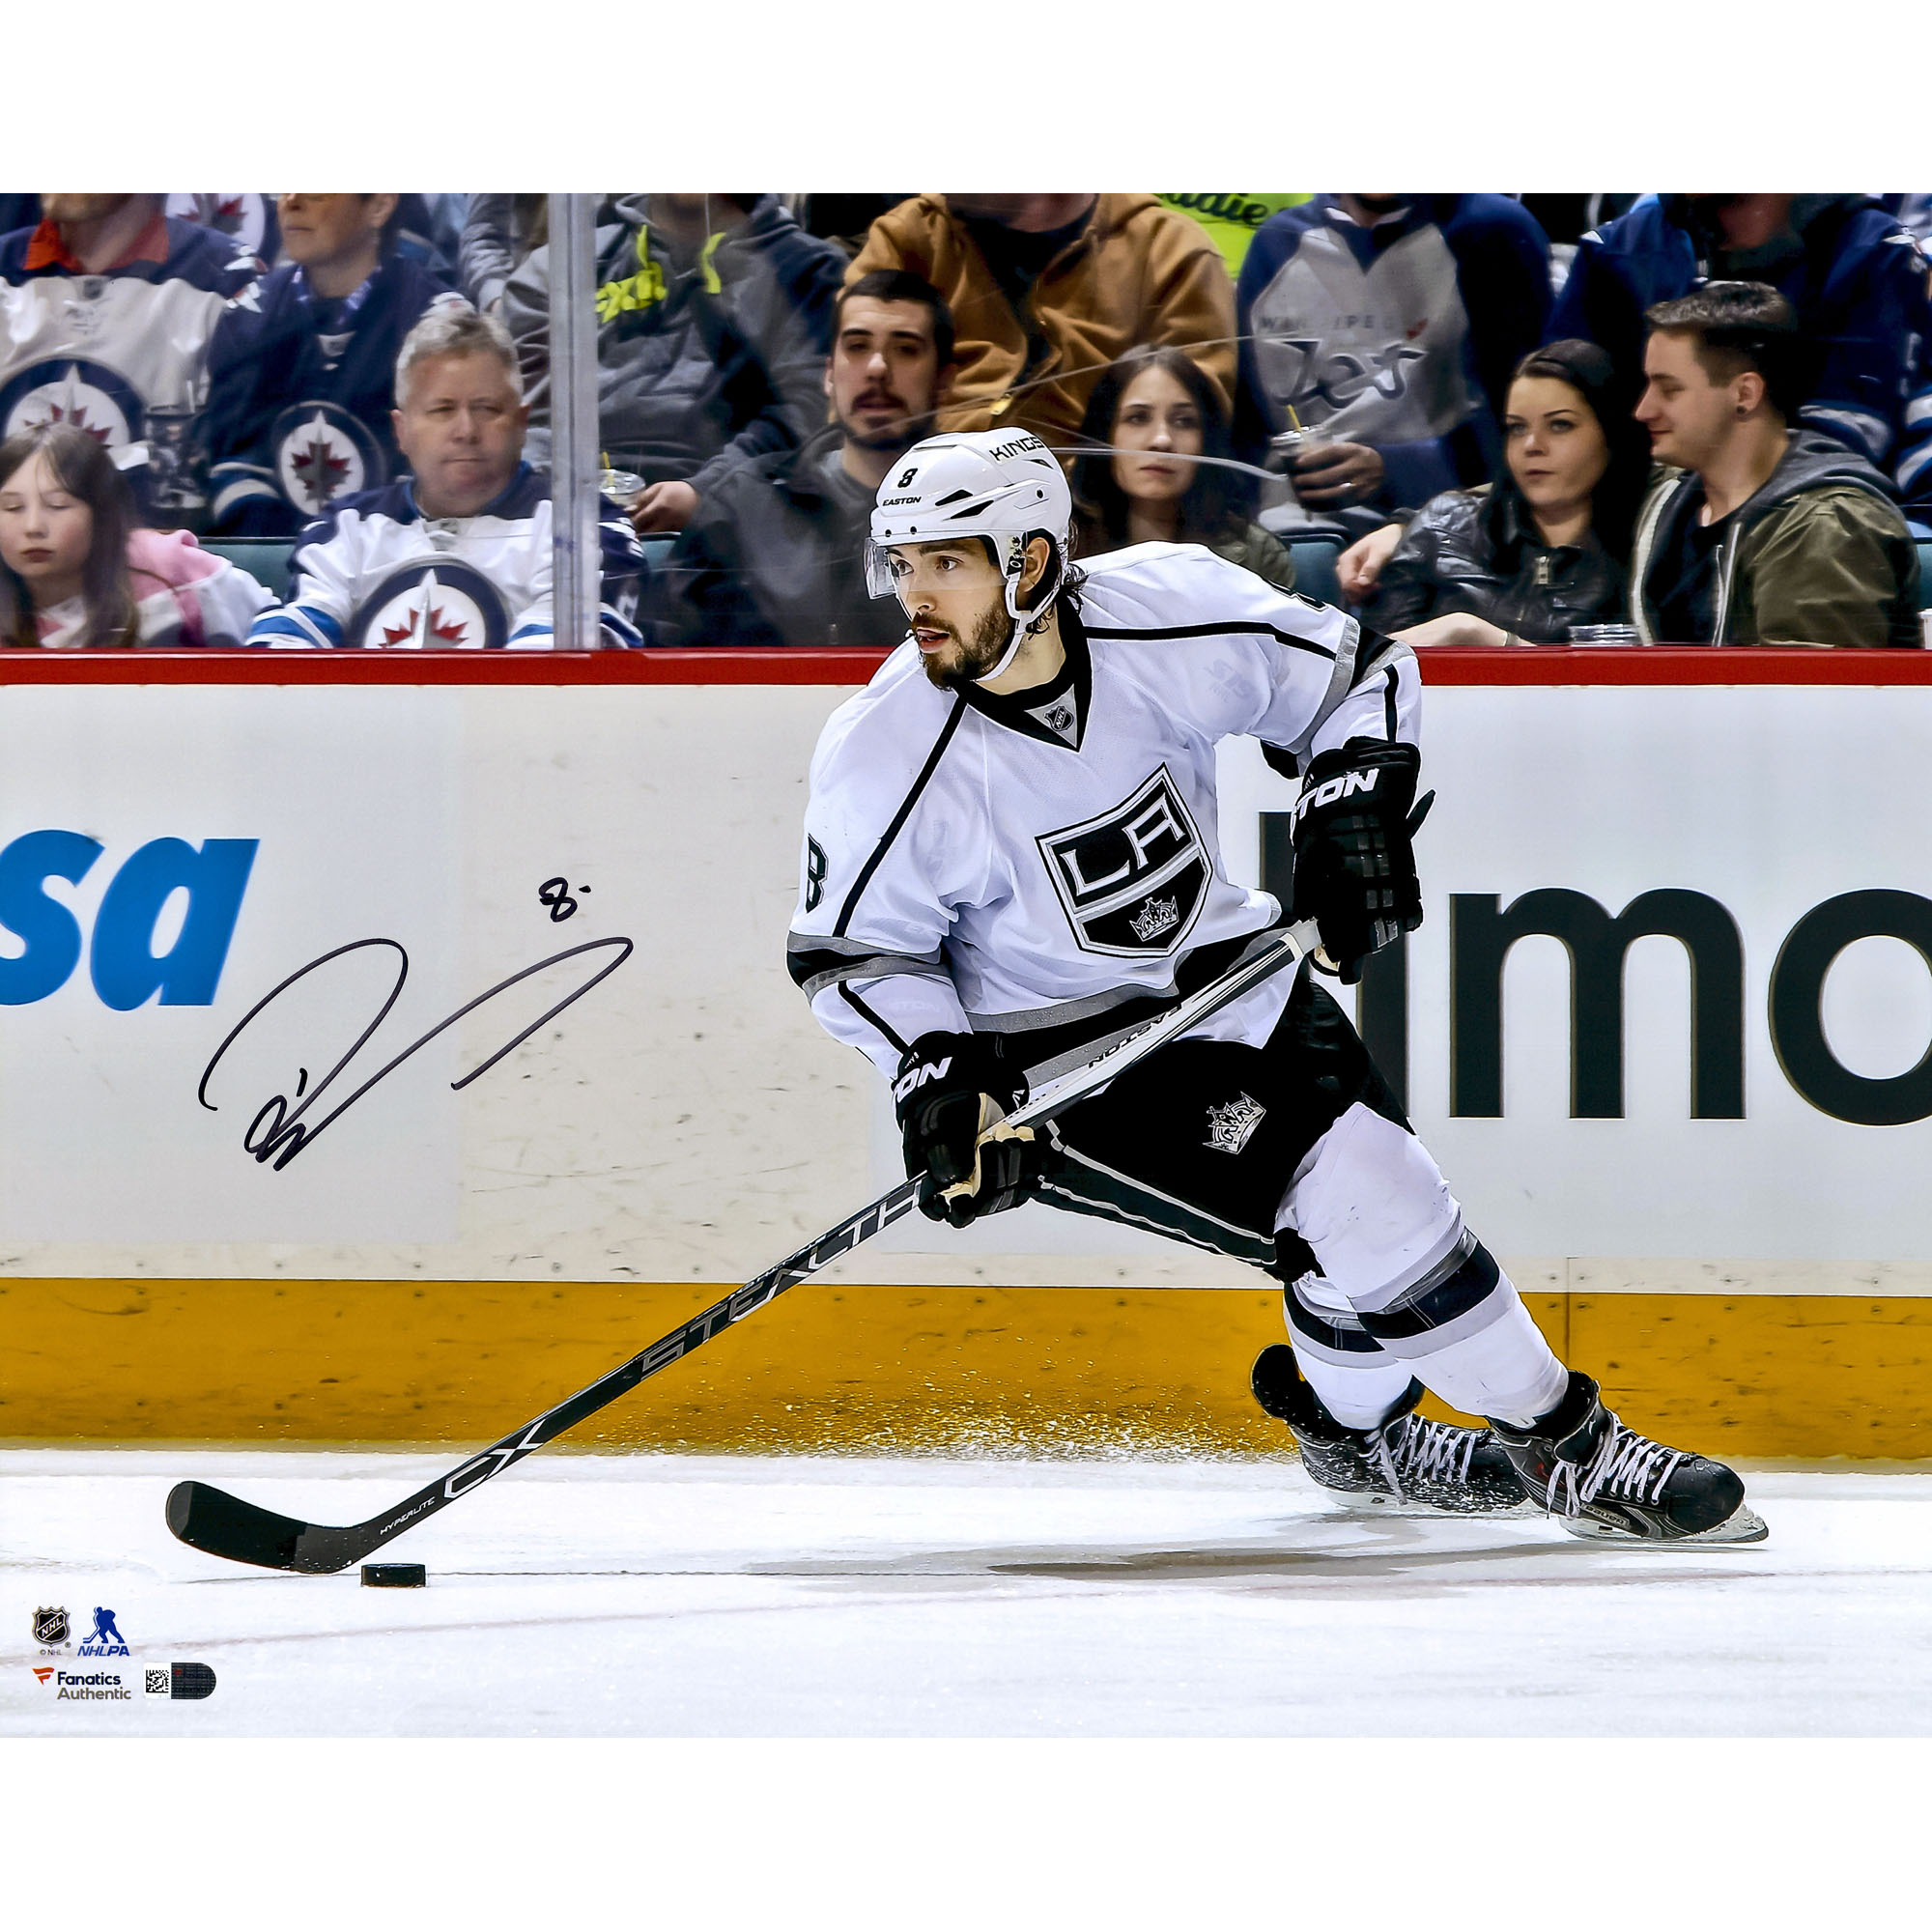 "Drew Doughty Los Angeles Kings Fanatics Authentic Autographed 16"" x 20"" White Jersey Skating With Puck... by Fanatics Authentic"